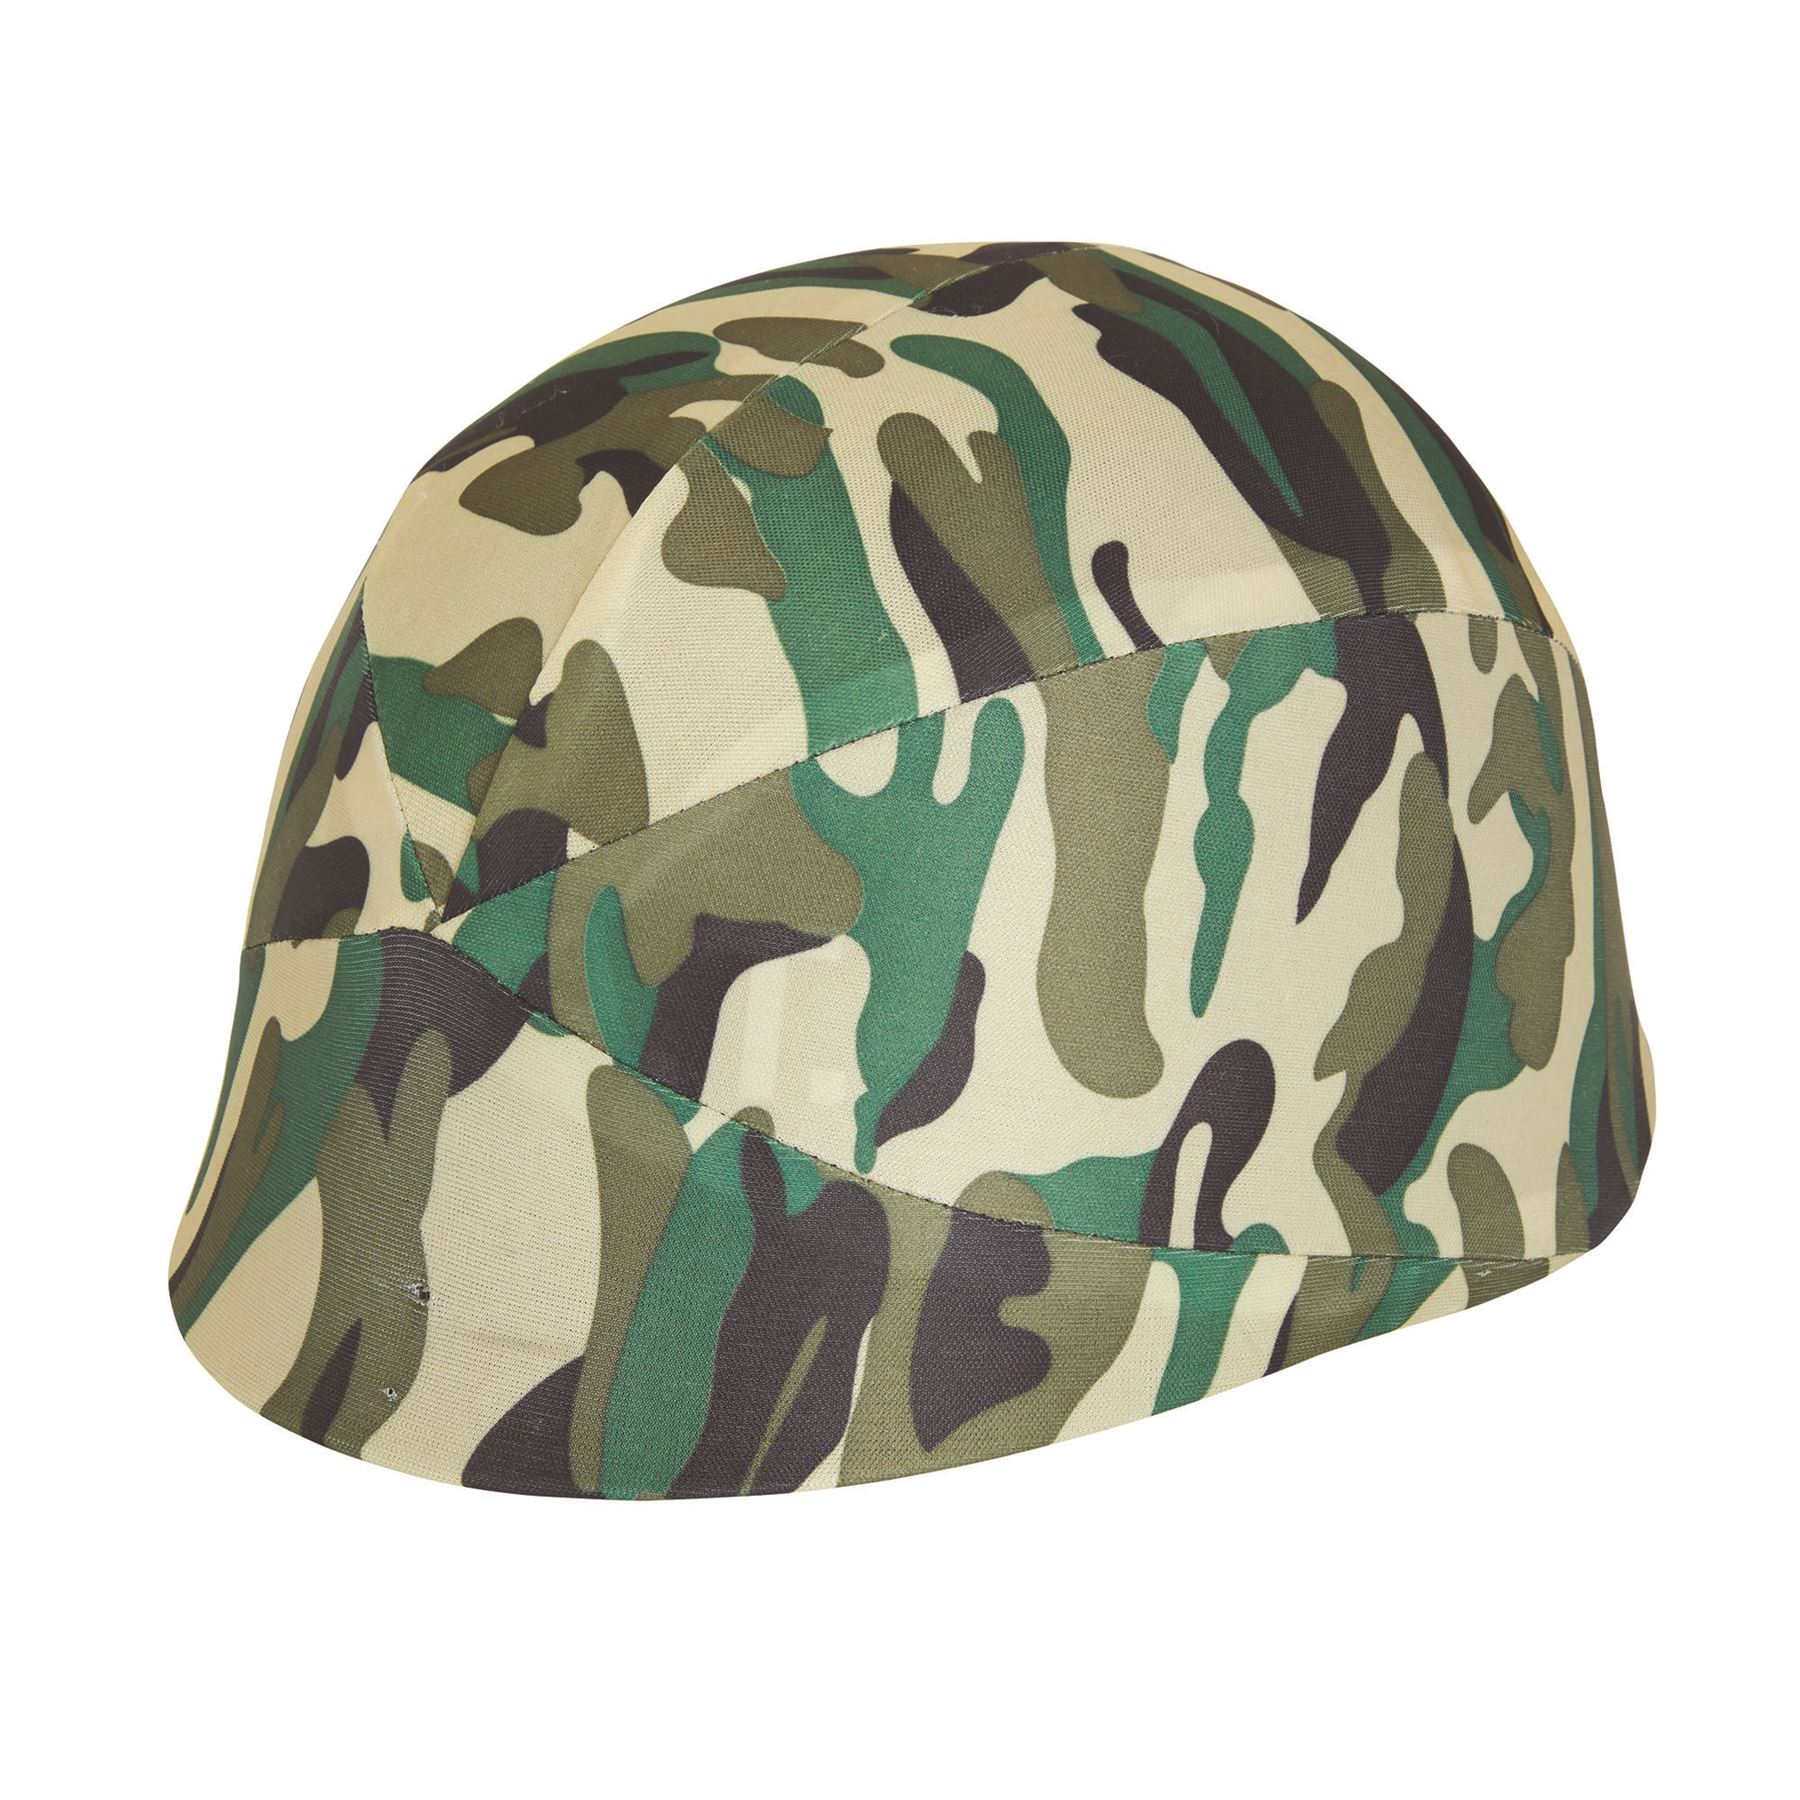 Camouflage Helmet Fabric Cover Hat War Soldier Childs Fancy Dress Accessory